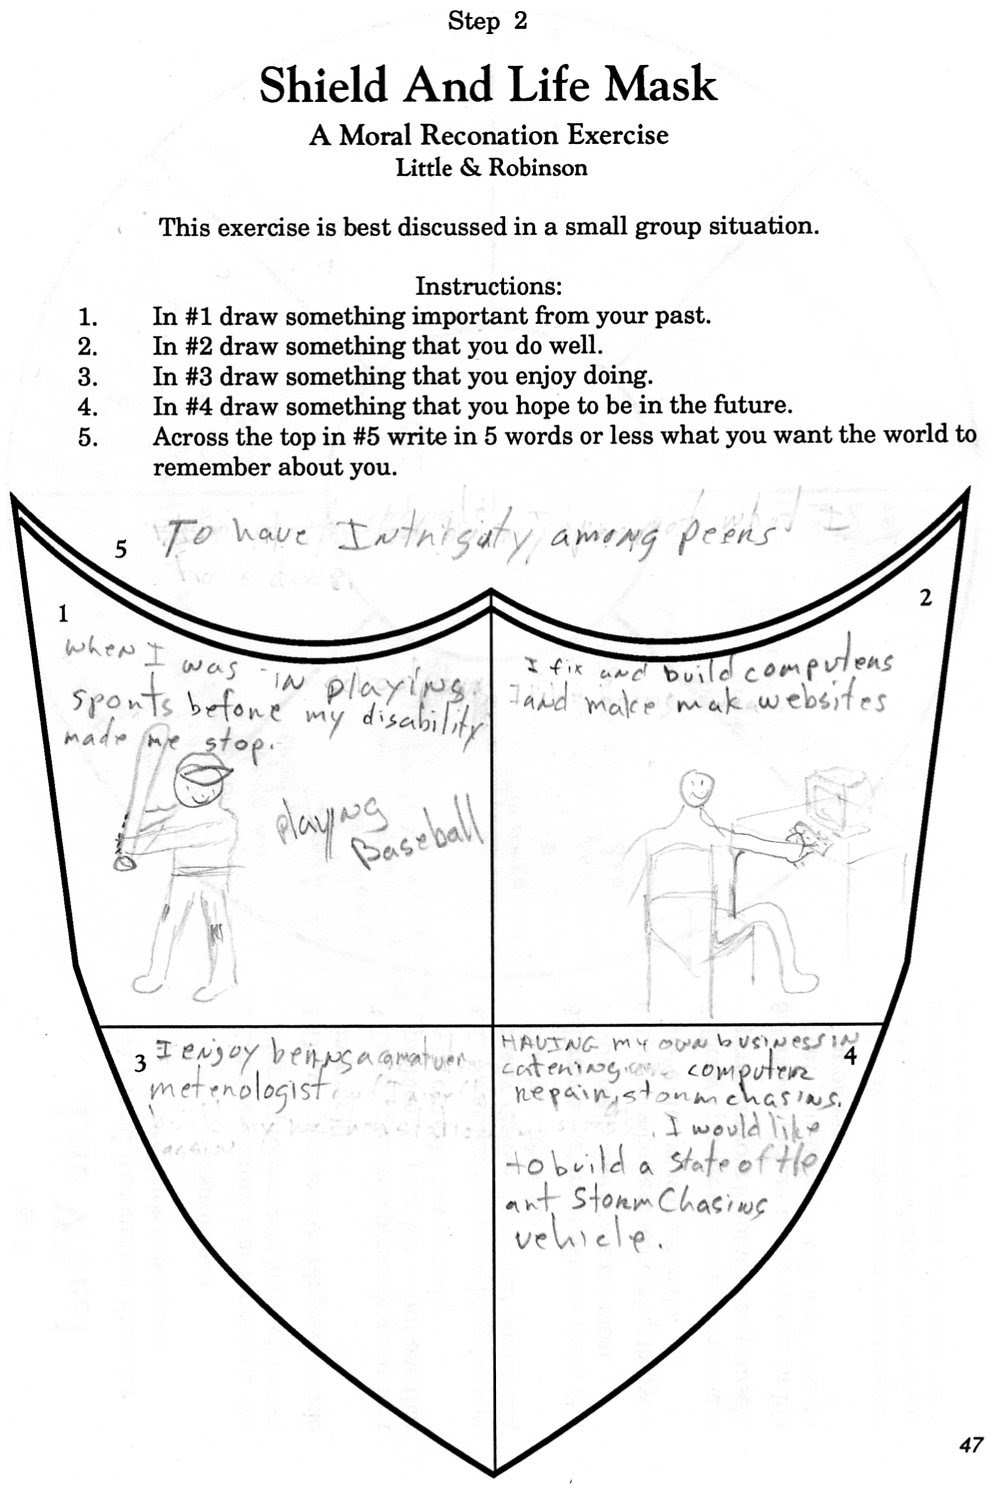 Worksheets Aa Step 3 Worksheet drugcourt caryhayes2003 step 2 shieldandlifemask jpg